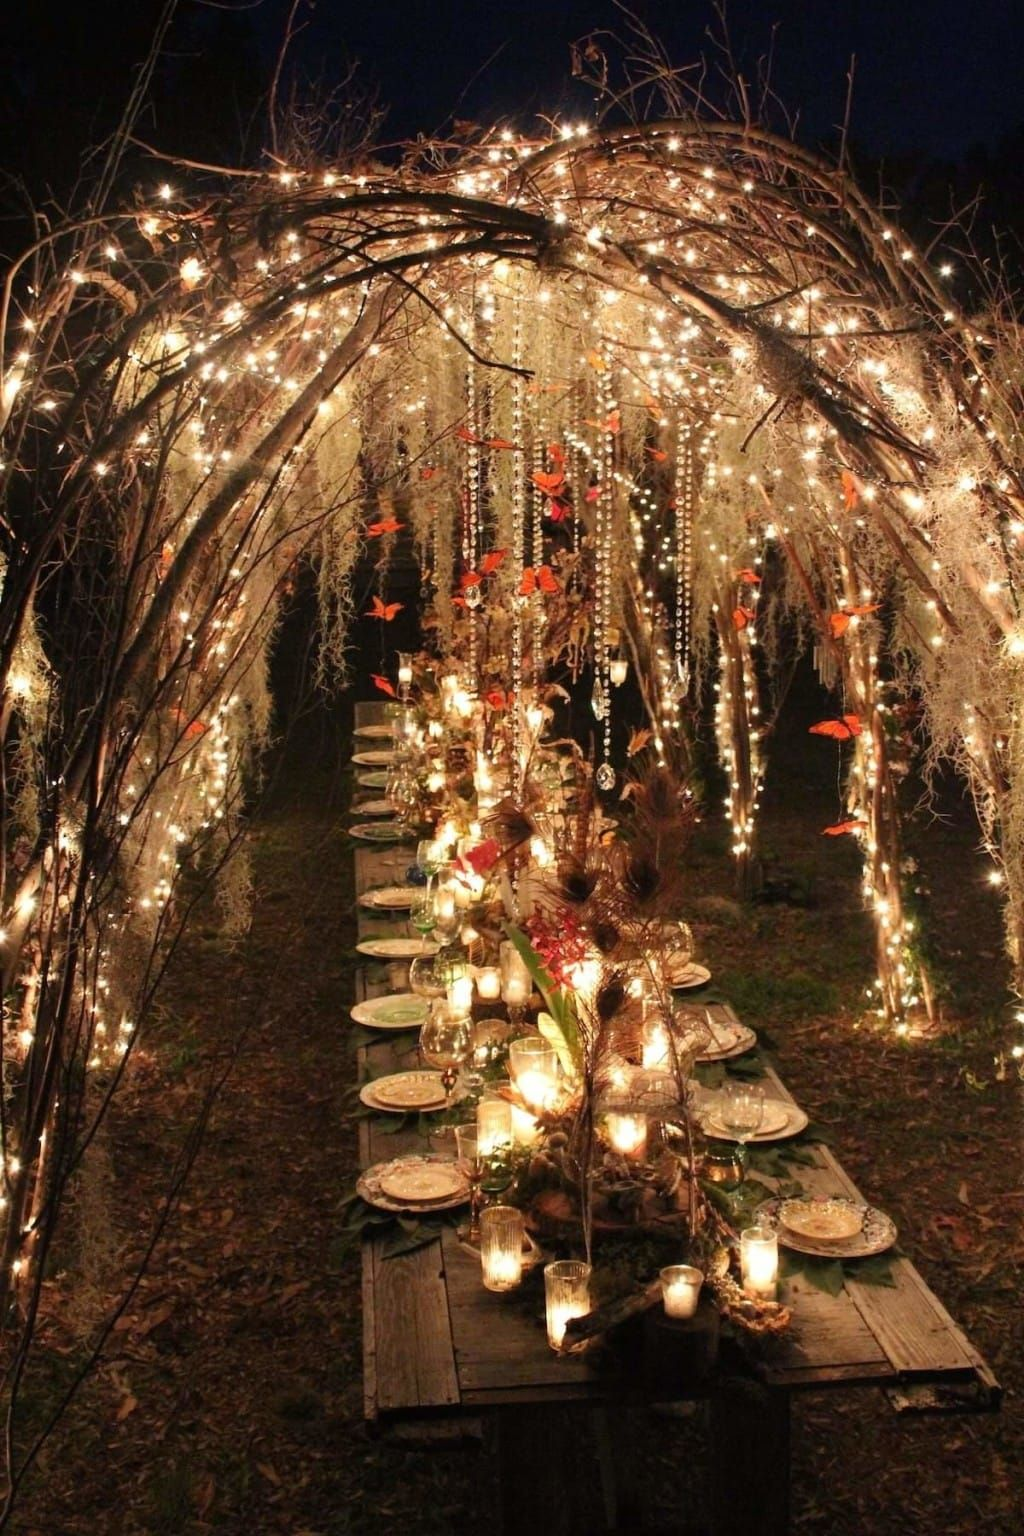 outdoor night lights on 25 stunning wedding lighting ideas for your wedding event wedding lights outdoor wedding dream wedding 25 stunning wedding lighting ideas for